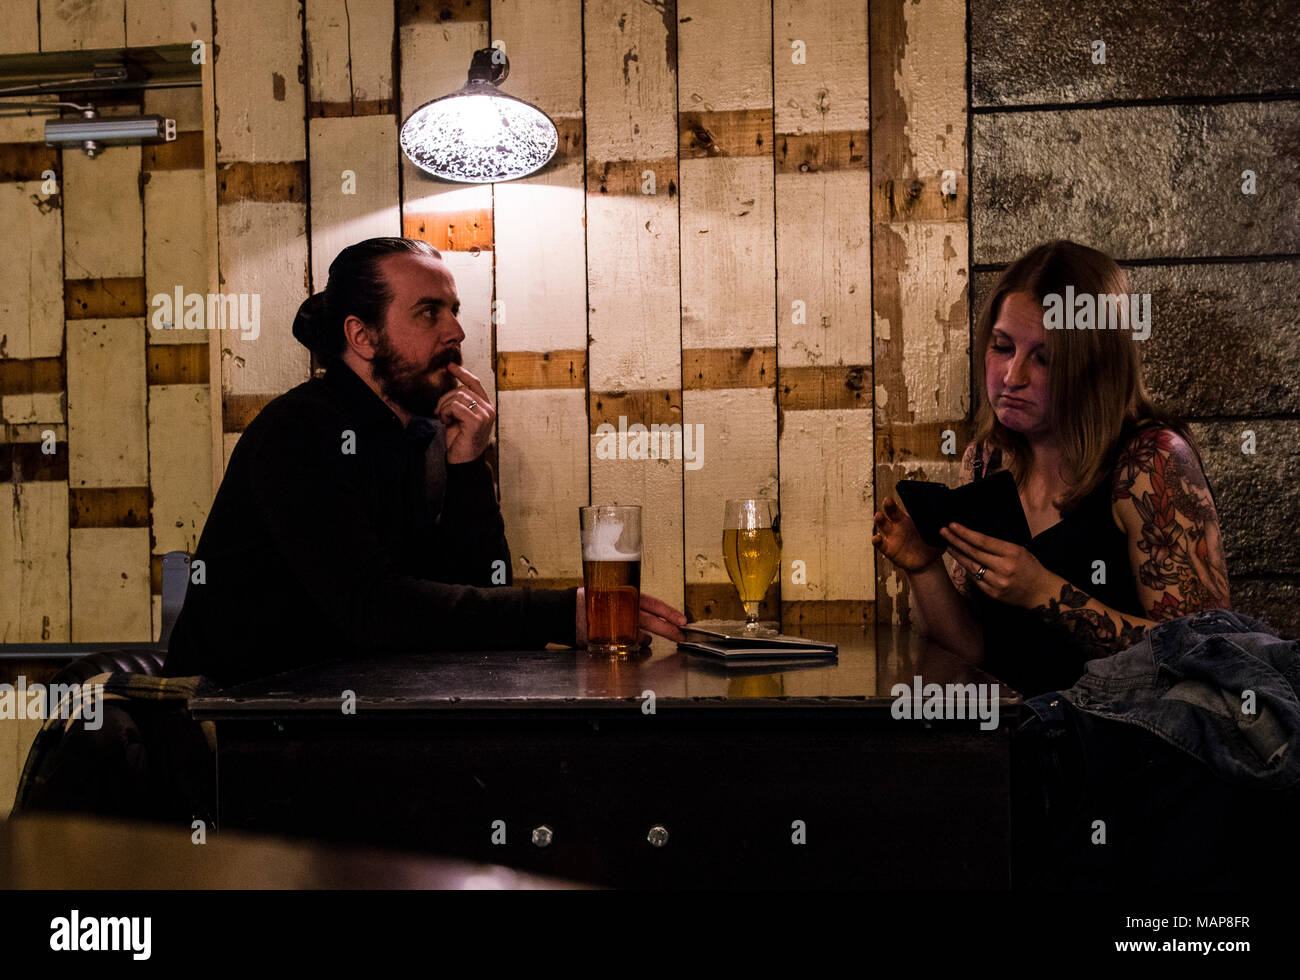 Woman on cell phone in bar with man watching - Stock Image